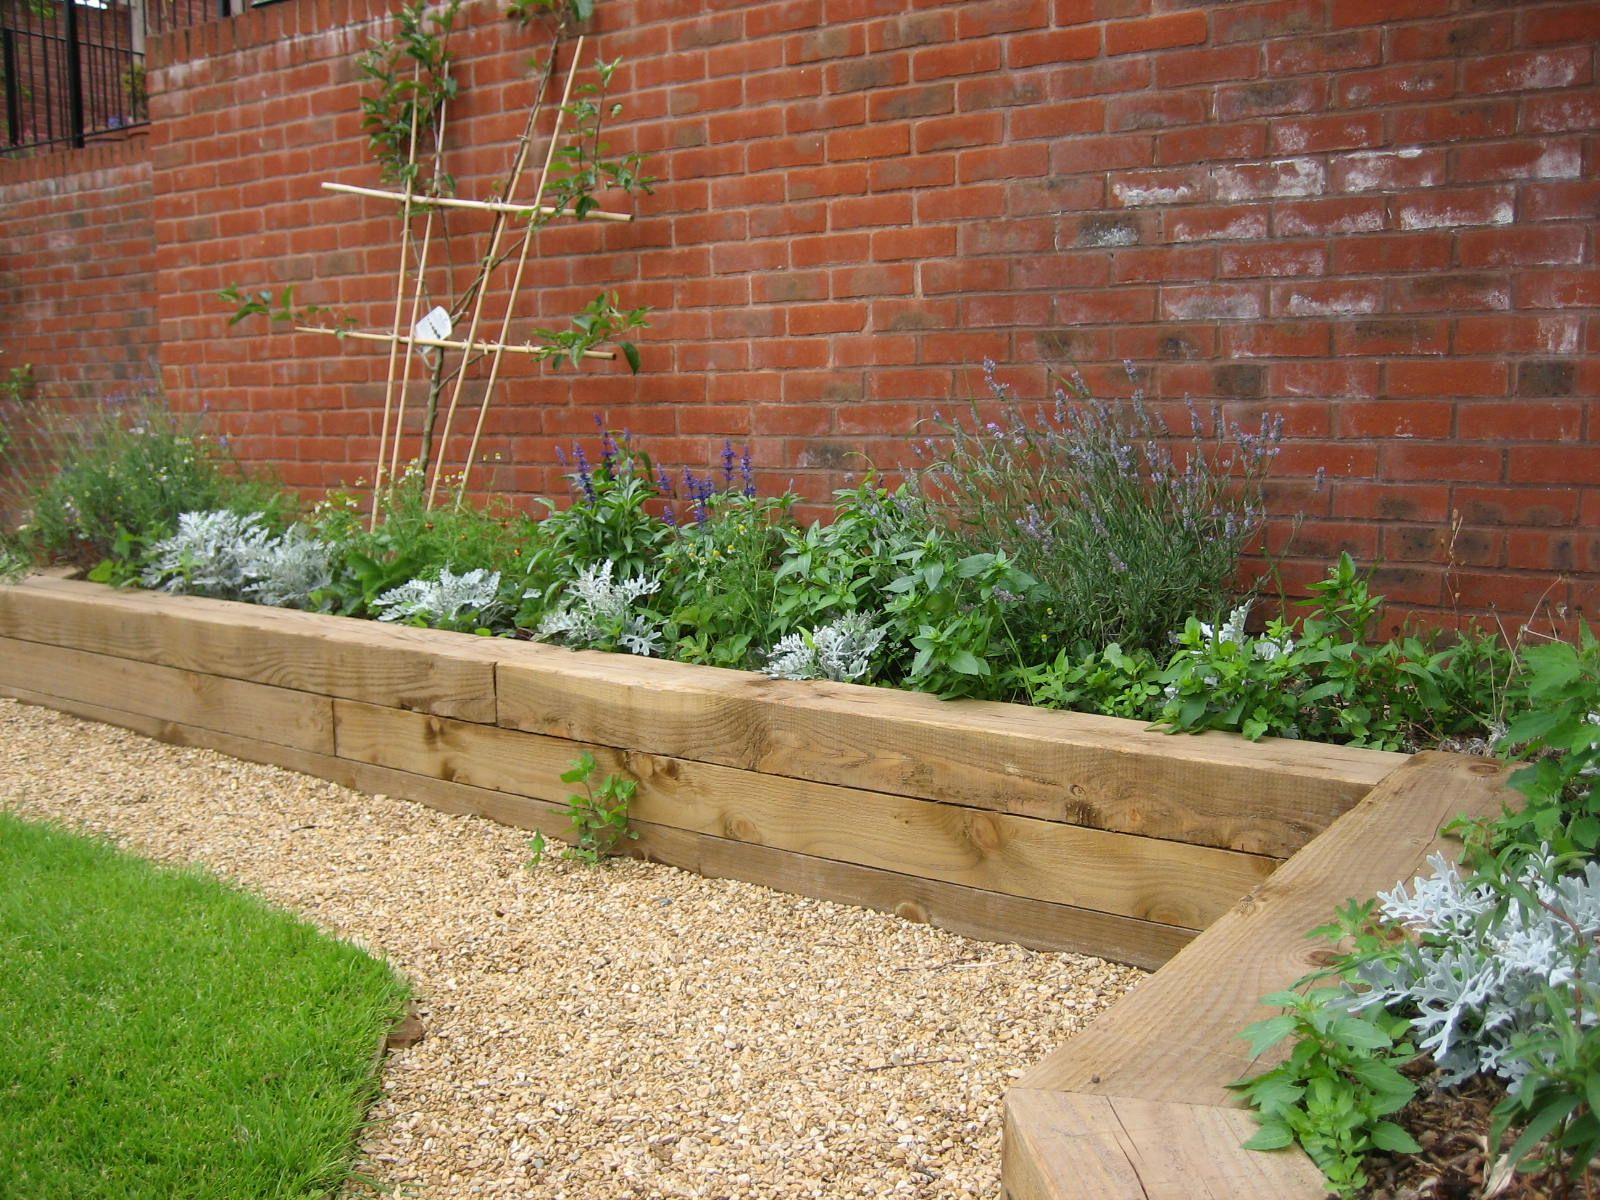 Using Railway Sleepers For Raised Vegetable Beds Raised Bed Gardening Ideas Tips On How To Create A Low